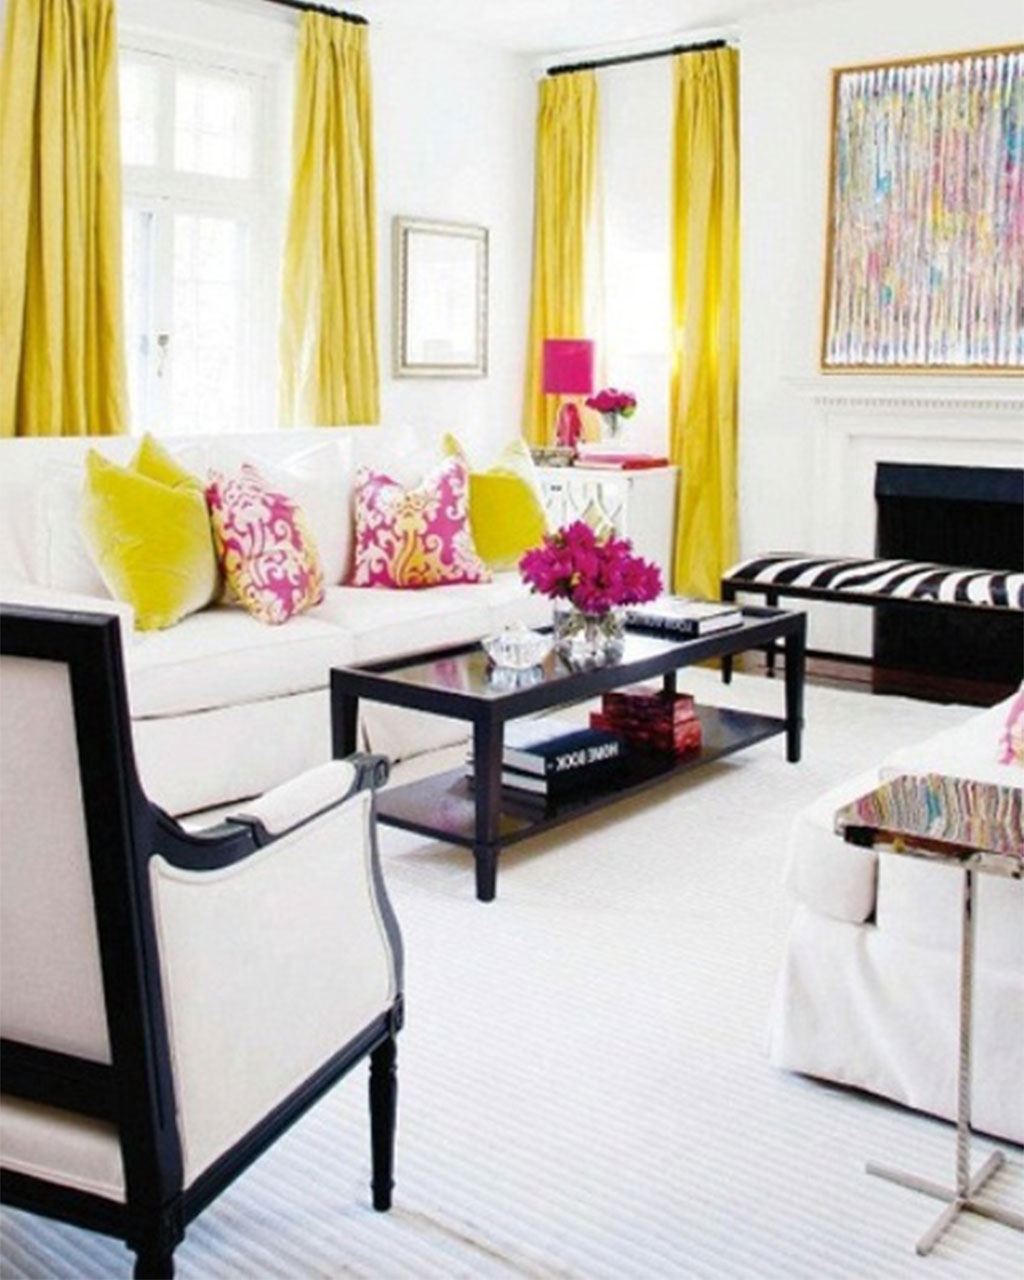 Decorating Idea For Living Room: 36 Living Room Decorating Ideas That Smells Like Spring